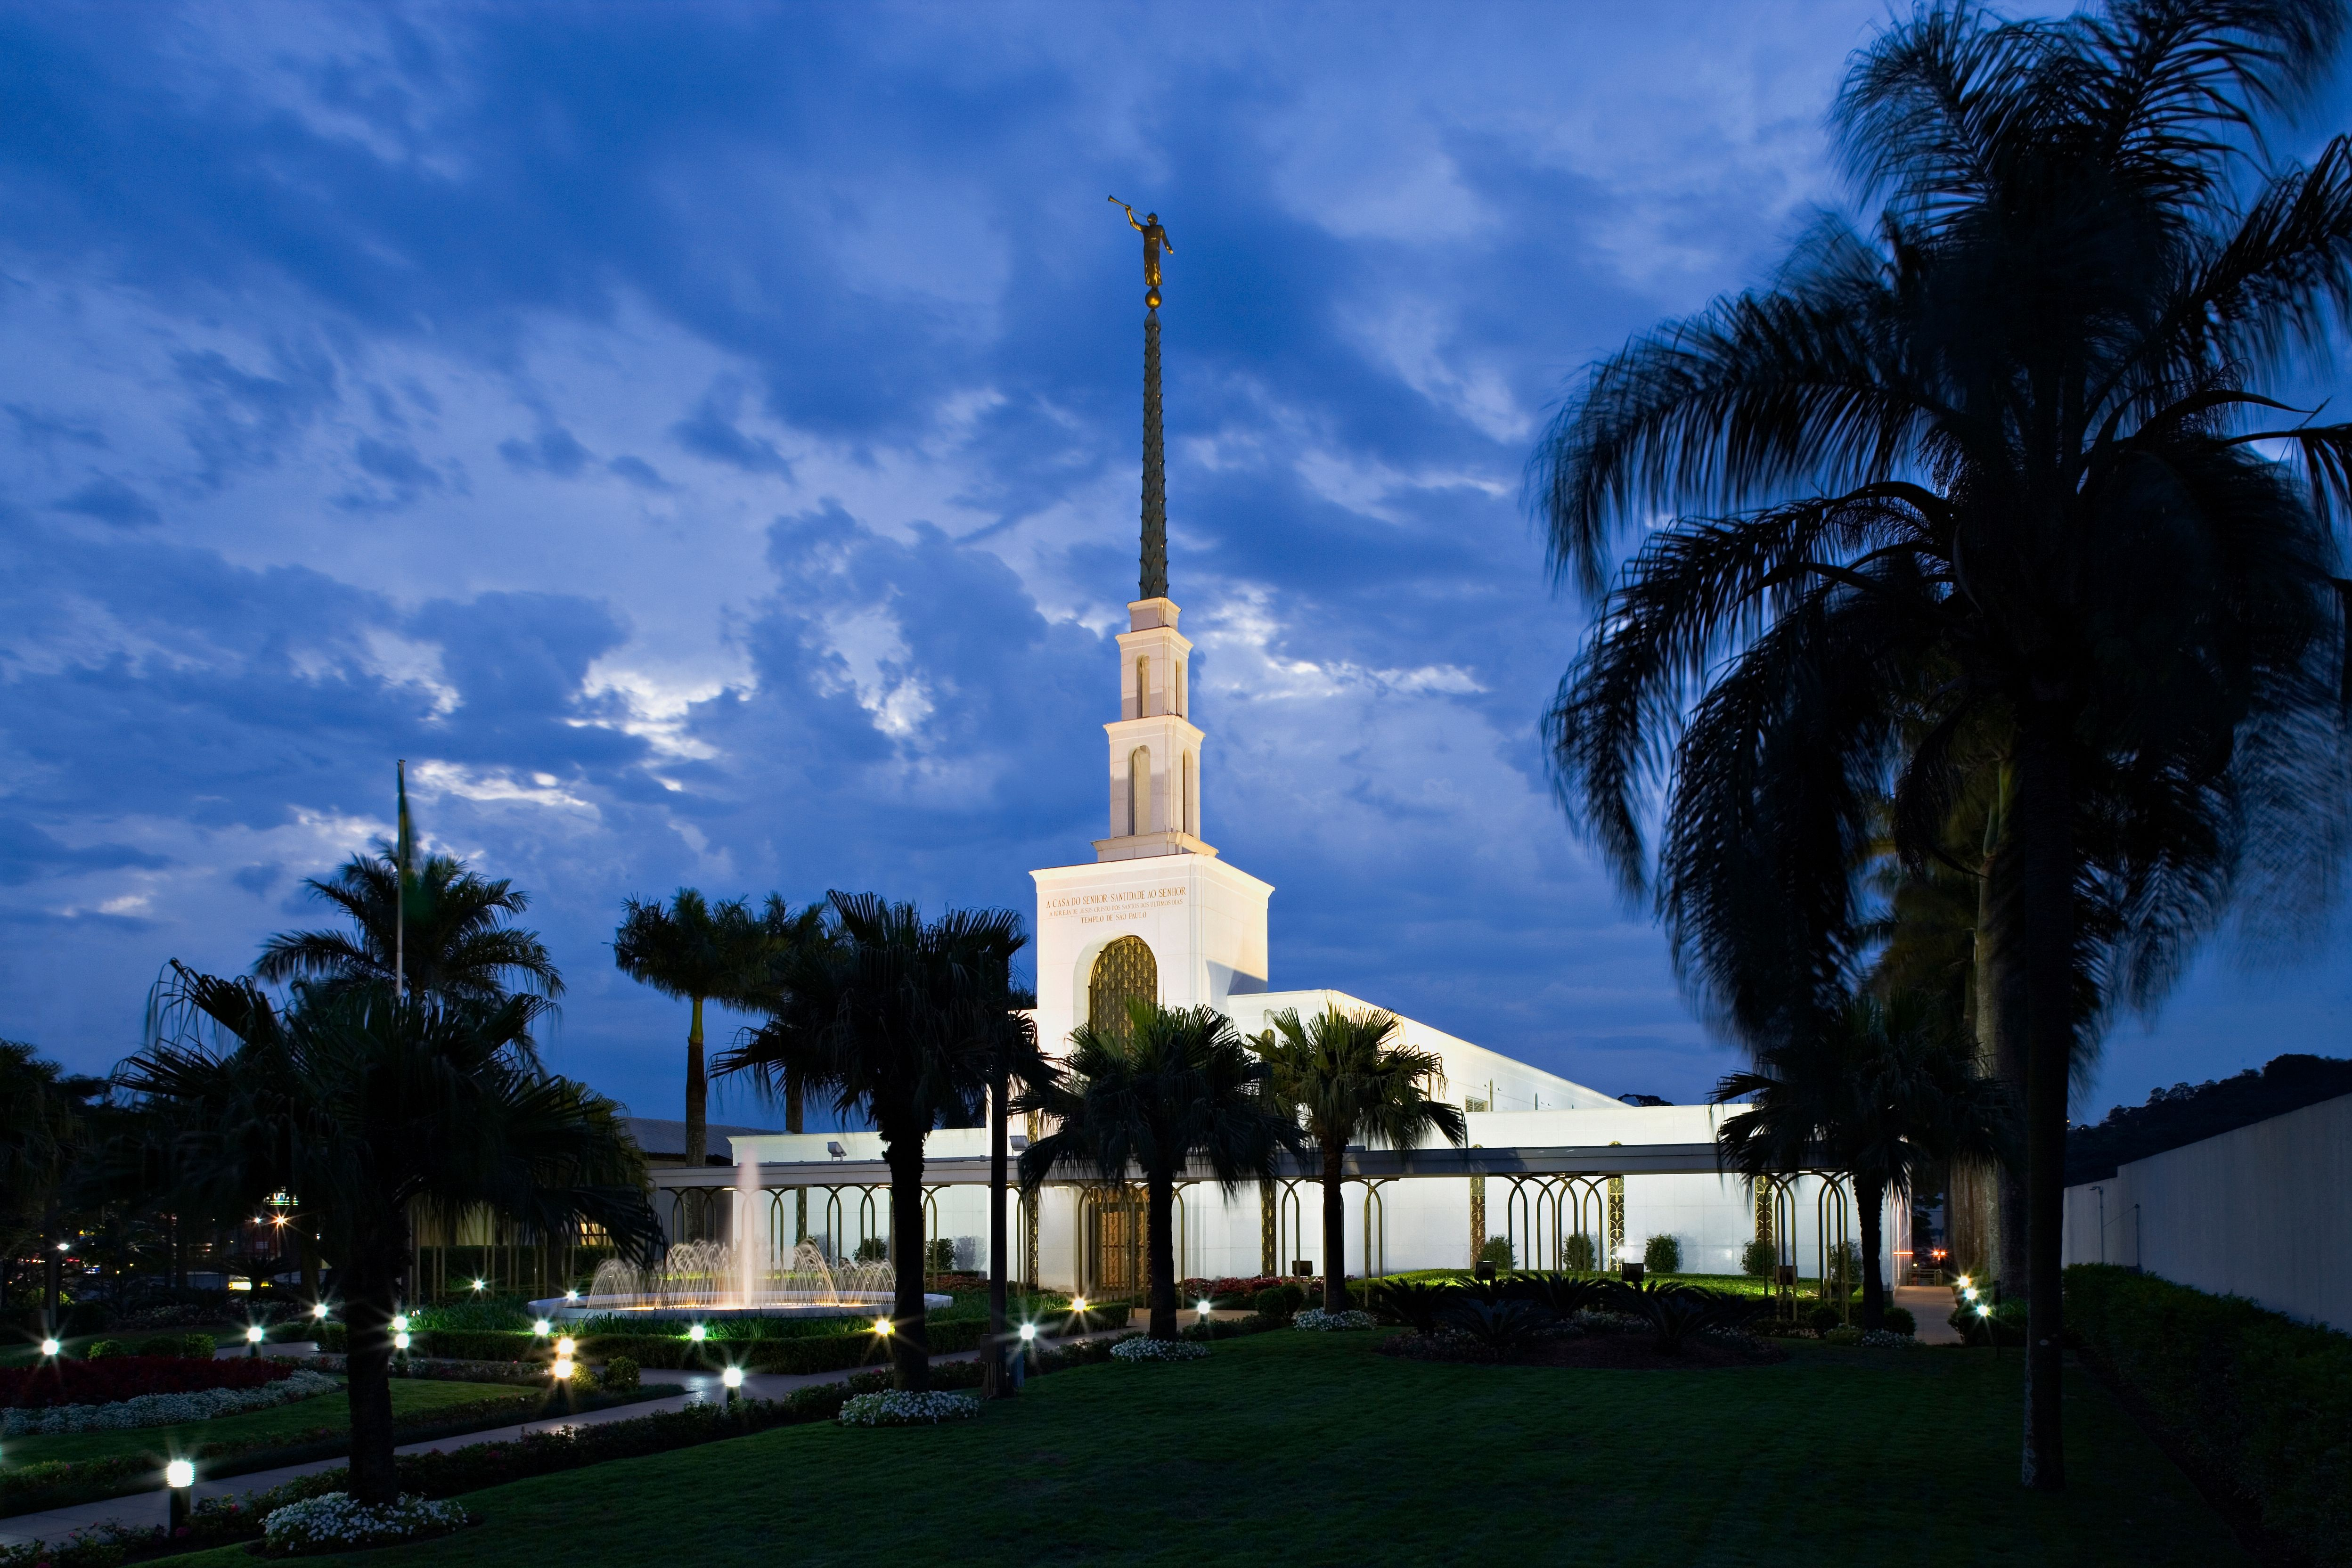 The São Paulo Brazil Temple in the evening, including the entrance and scenery.